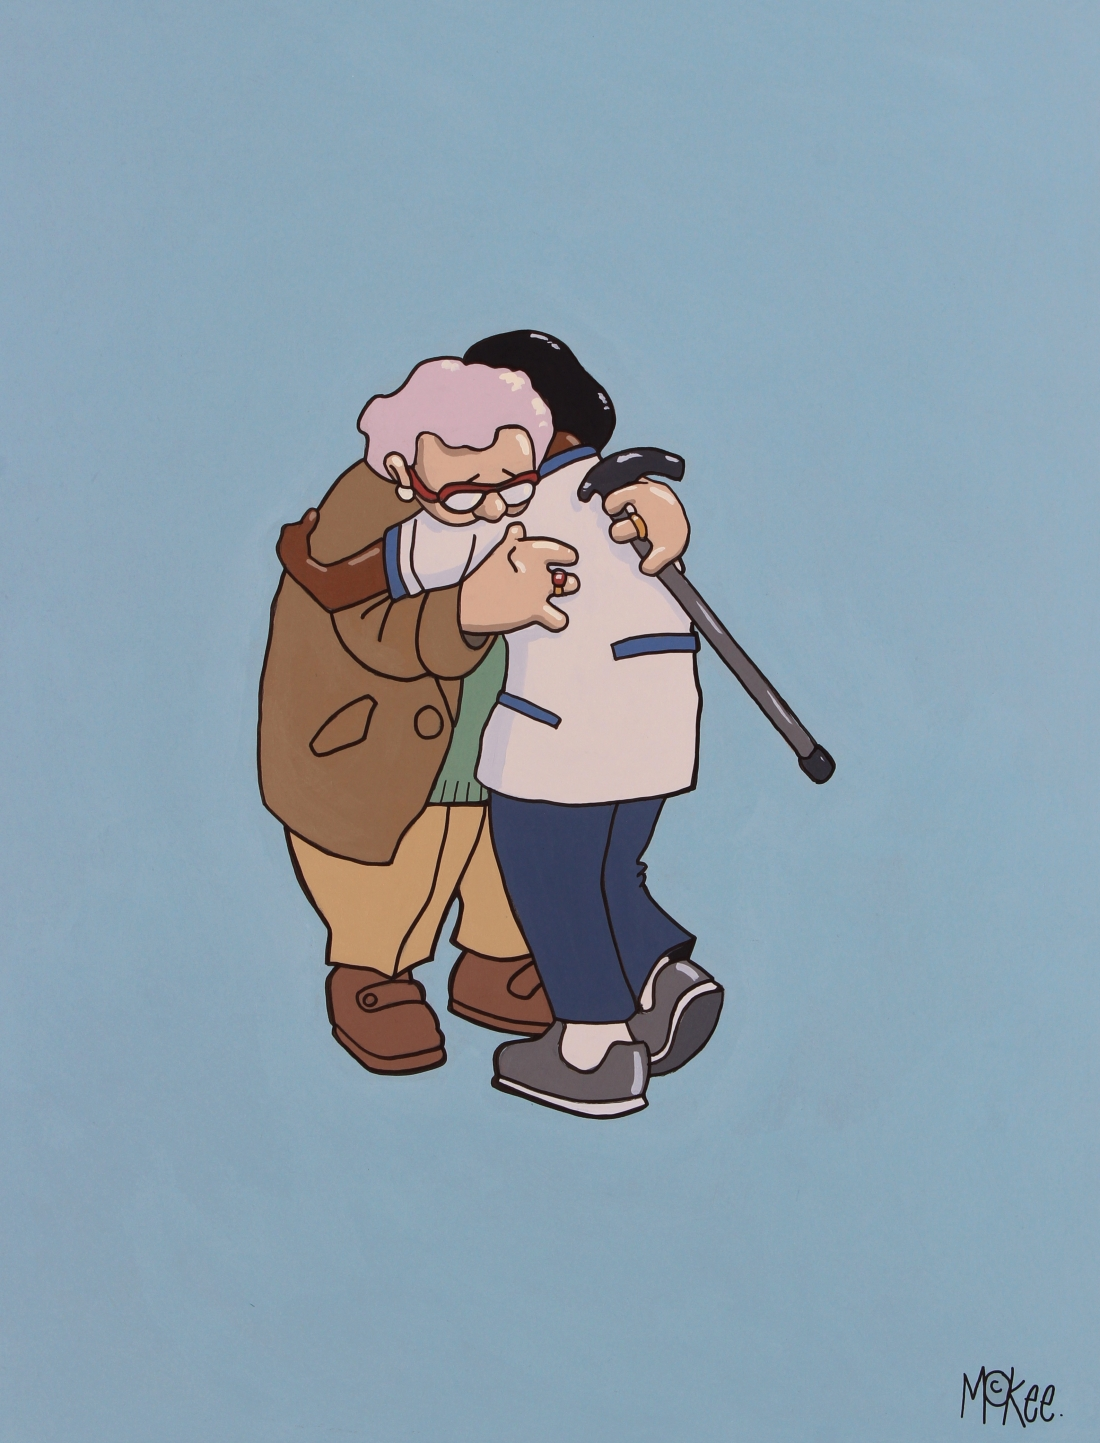 National Hug Service. Always there when you need it the most.